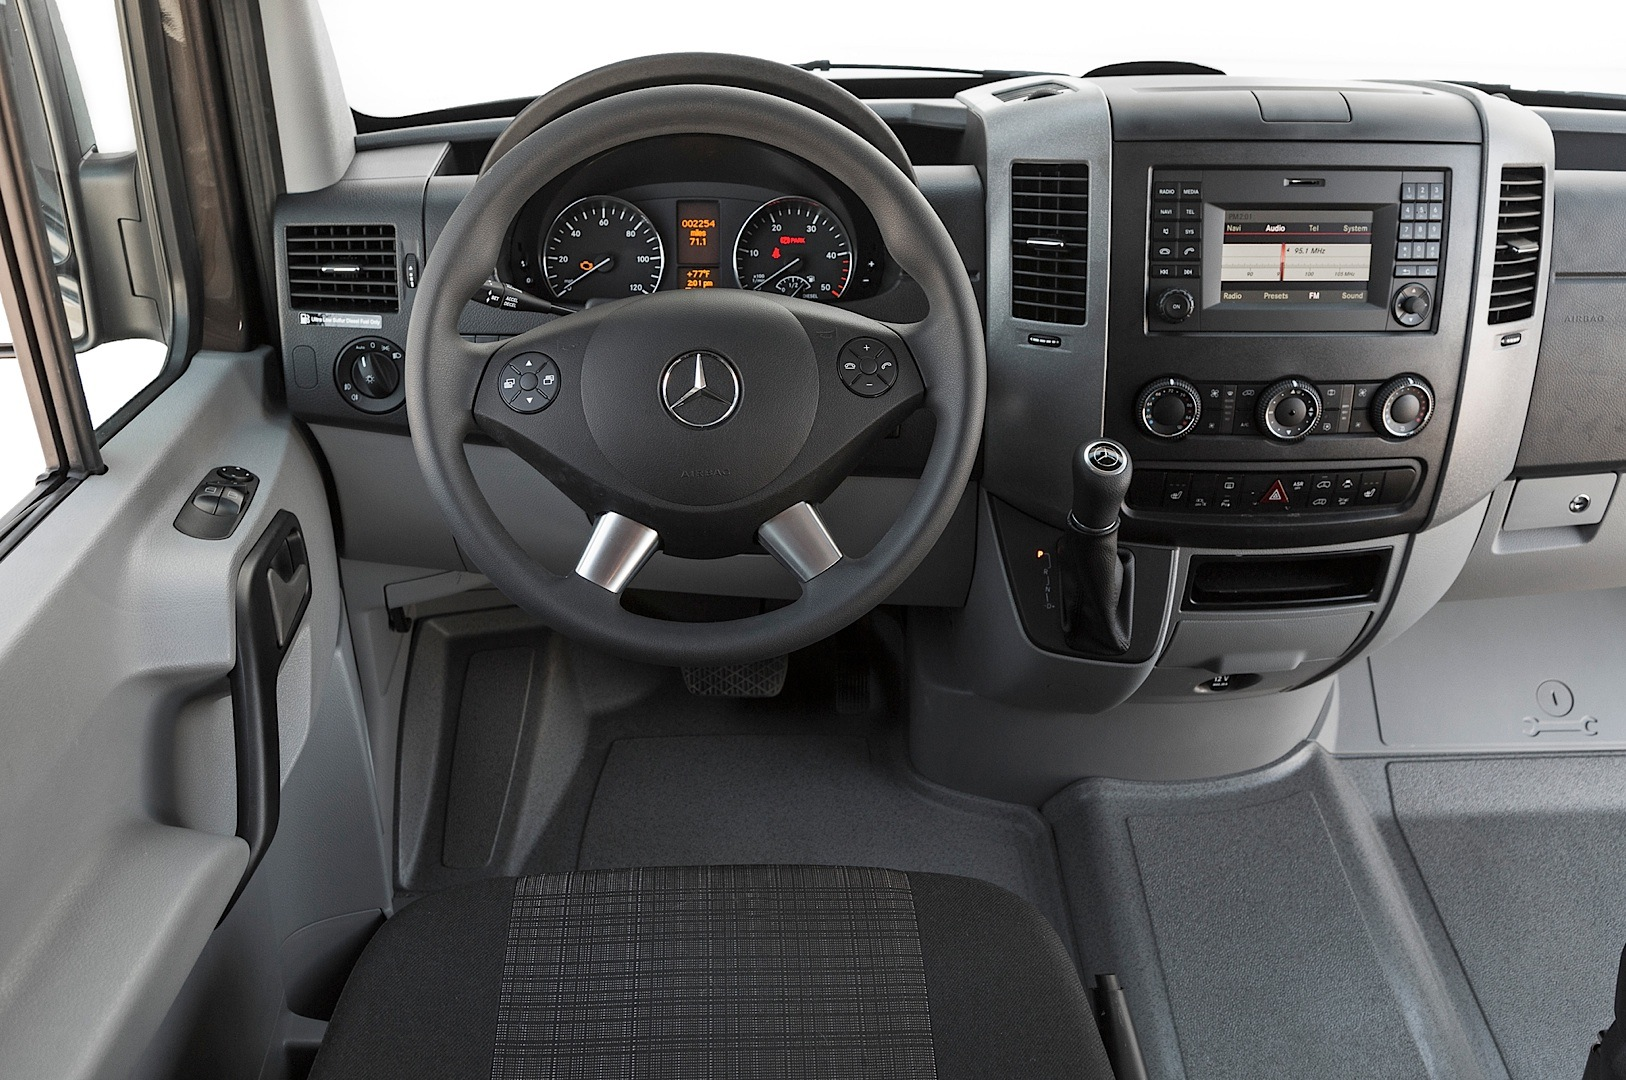 2014 Mercedes Benz Sprinter Gets Reviewed By Truck Trend